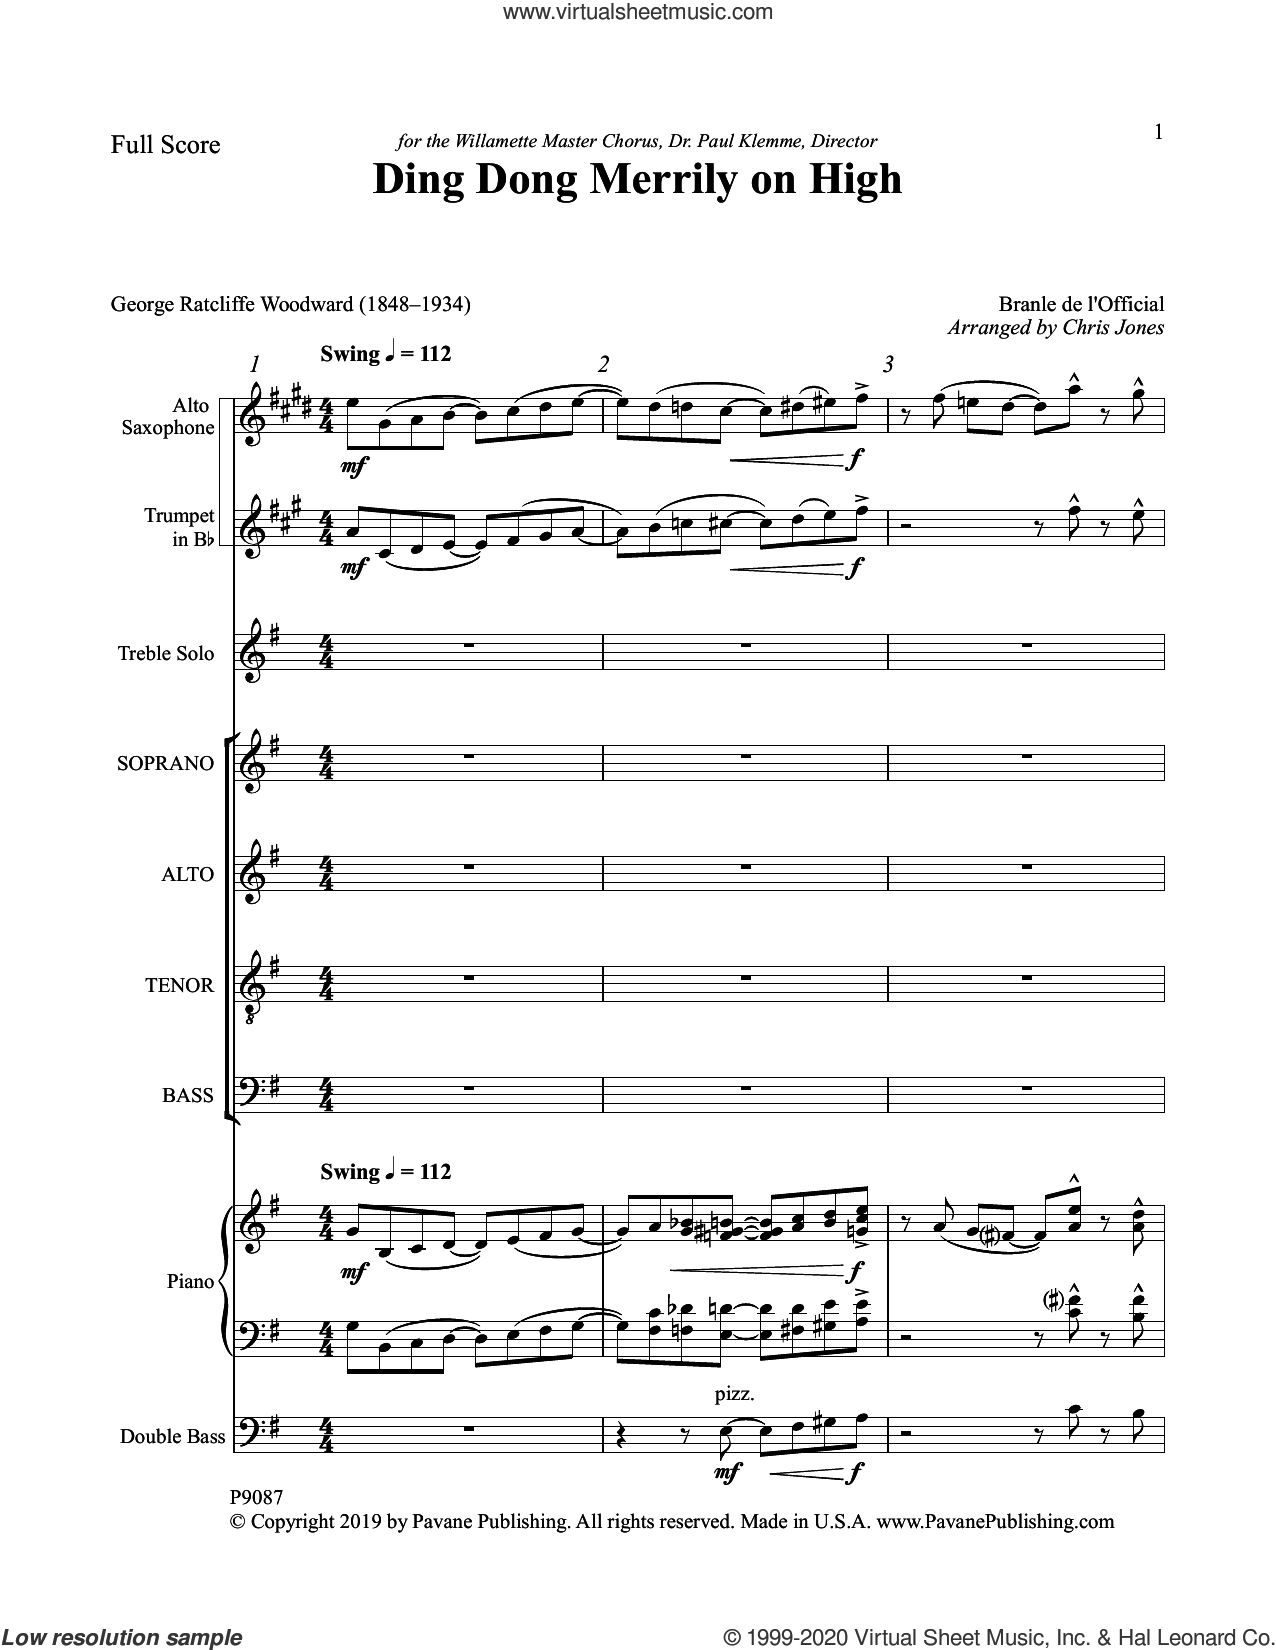 Ding Dong Merrily on High (COMPLETE) sheet music for orchestra/band by Chris Jones and George Ratliff Woodward, intermediate skill level